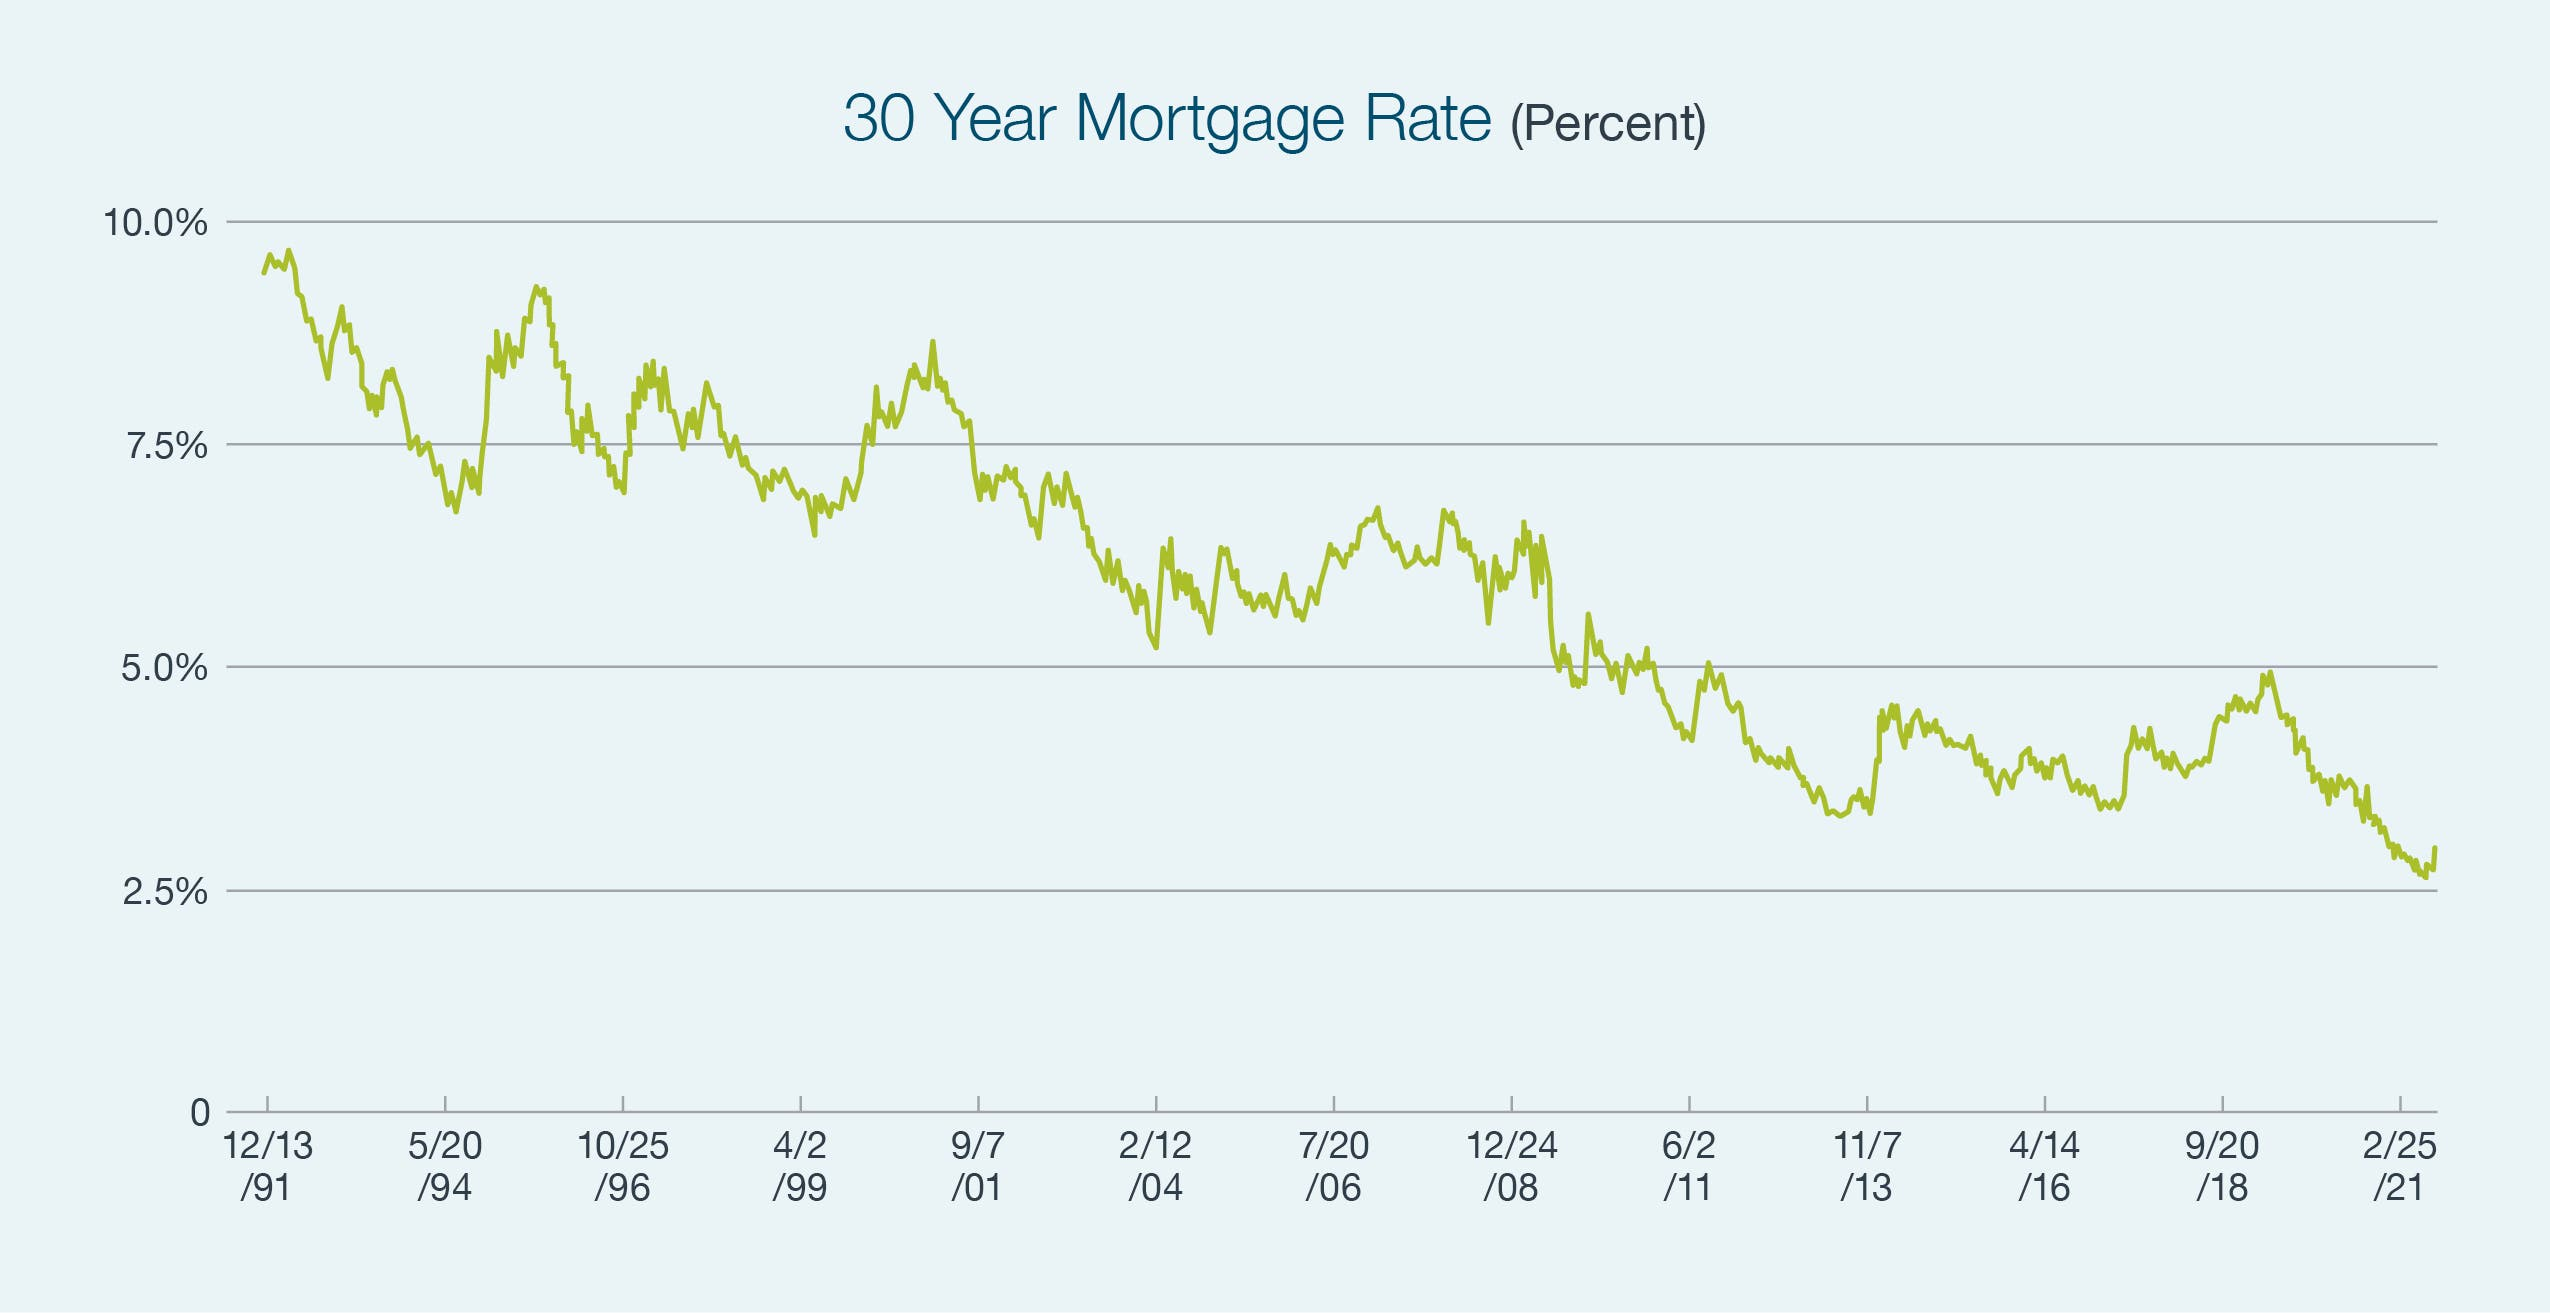 Graph showing the downward trend of 30 Year Mortgage Rates - Graph background color is light blue and the data is shown on a line graph with a lime green color